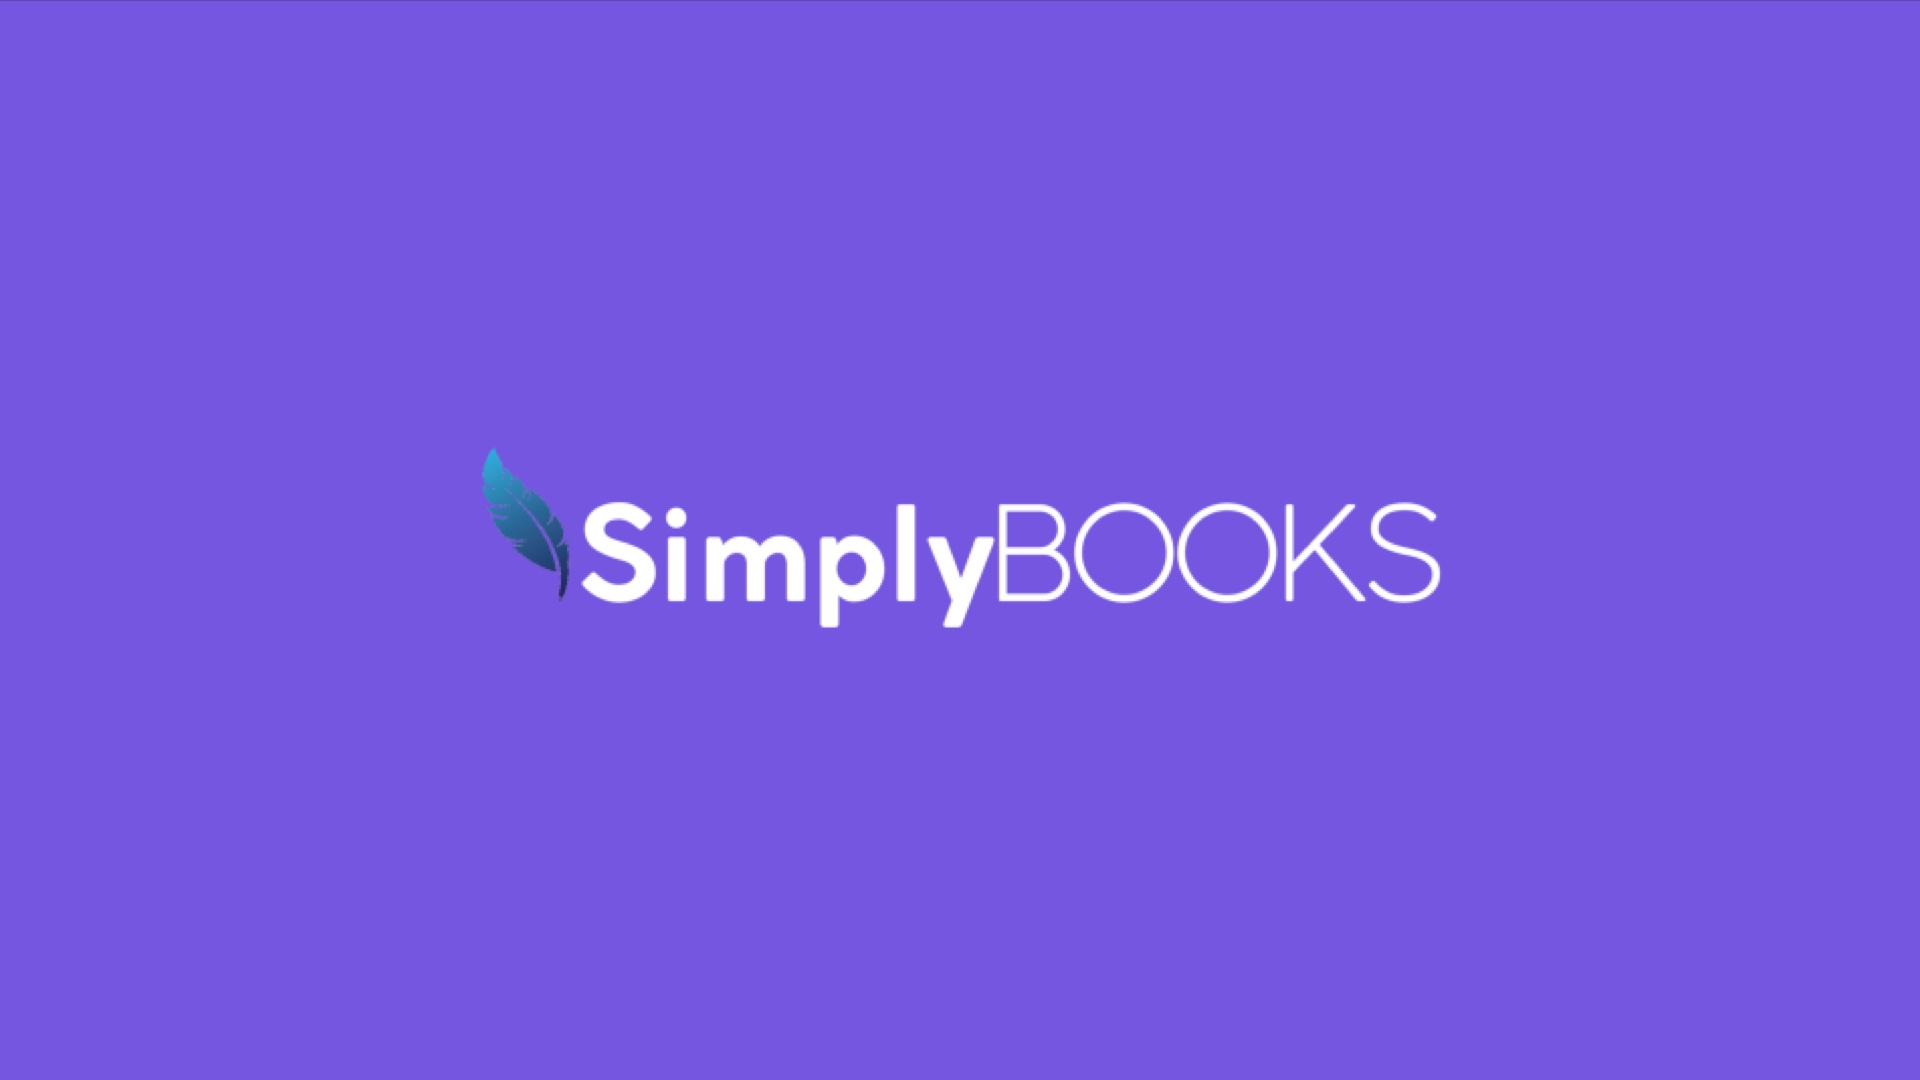 How to receive invoices from SimplyBooks in OkiOki